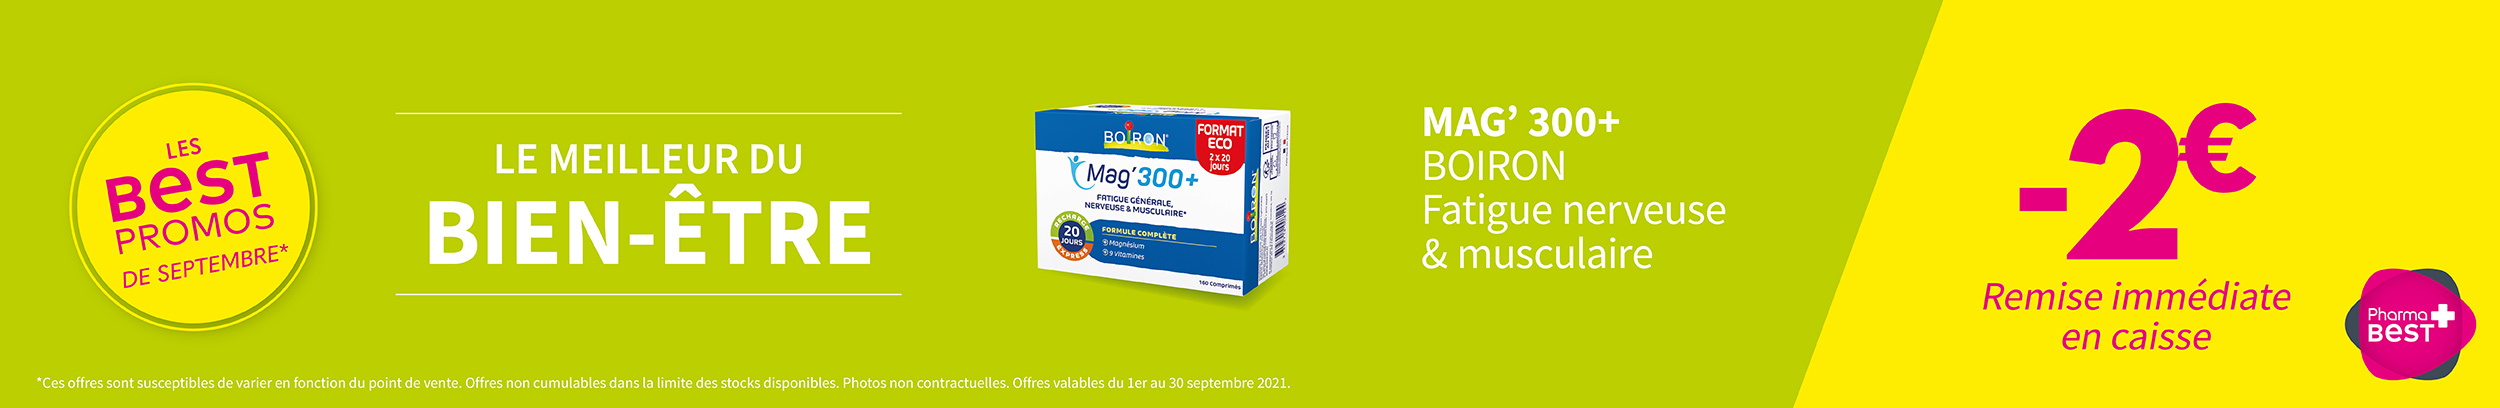 MAG' 300+ - BOIRON / Fatigue nerveuse & musculaire